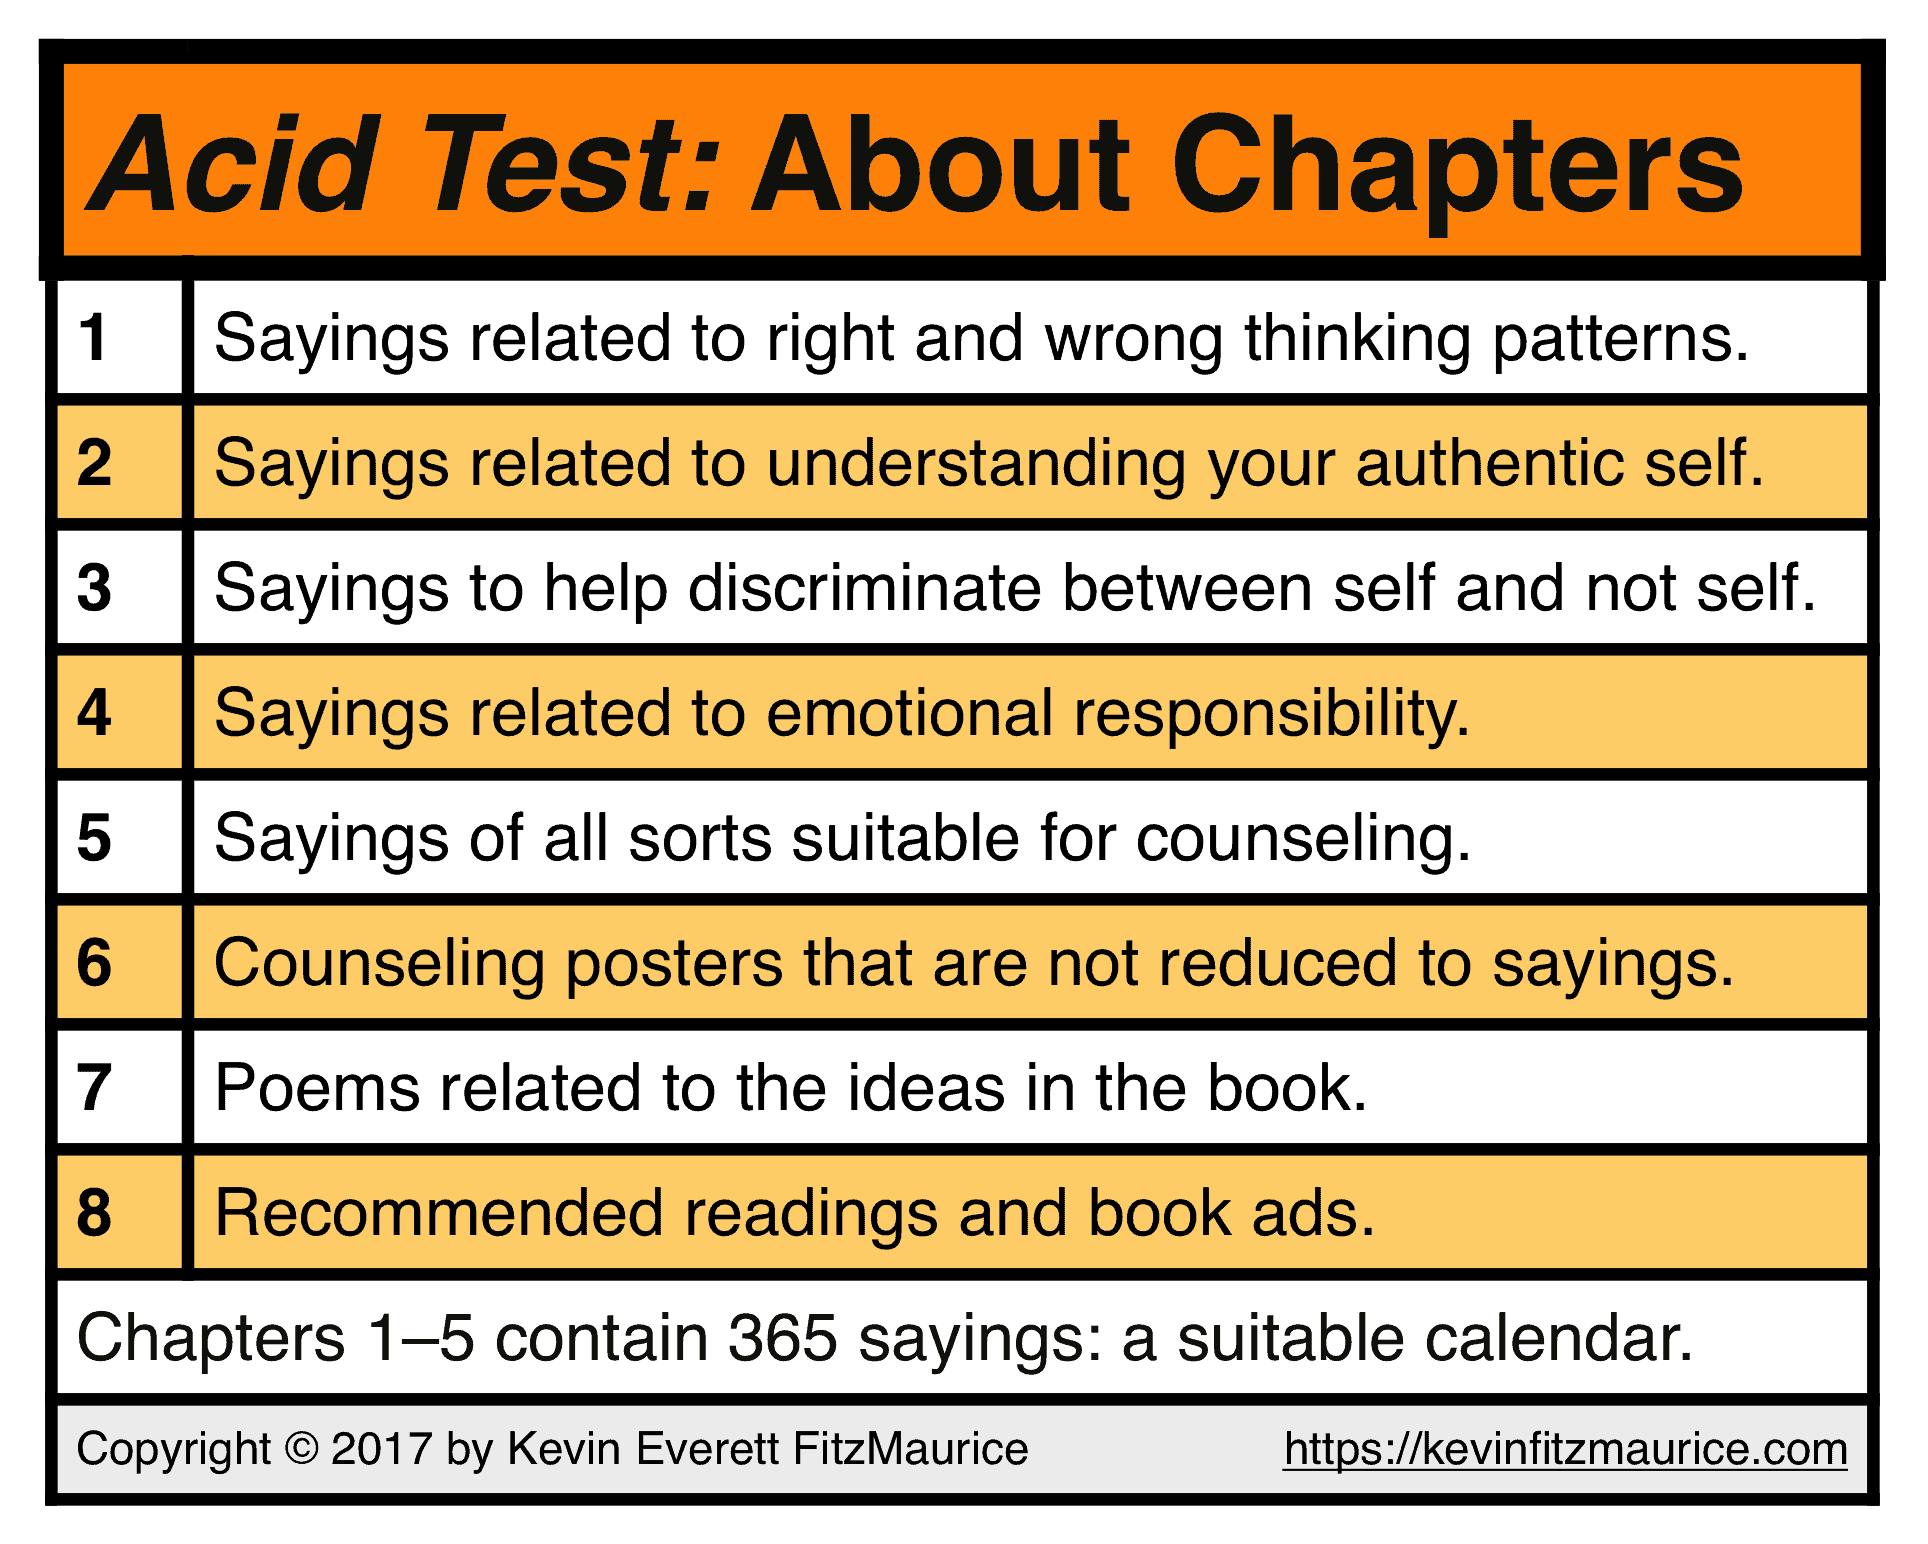 Acid Test Chapter Information